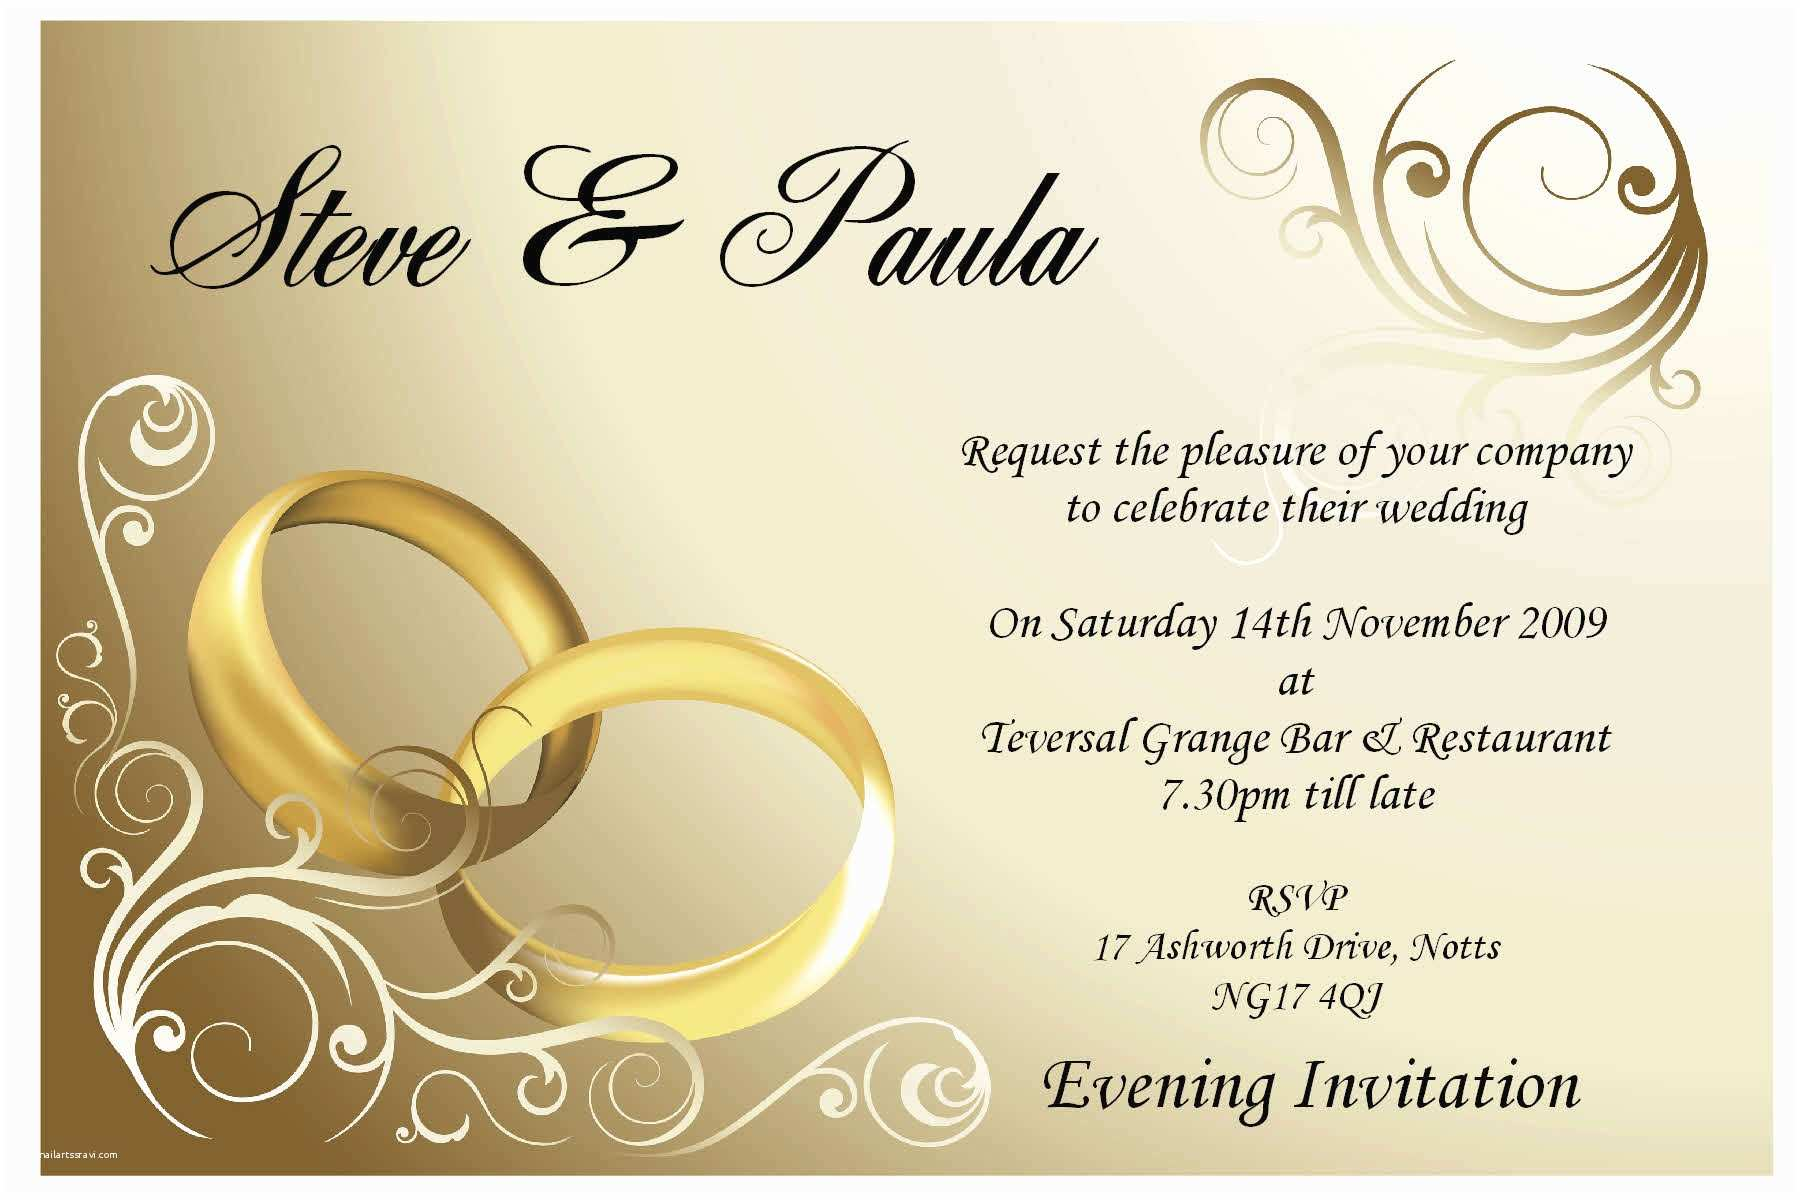 Wedding Invitation Templates Wedding Invitation Day evening